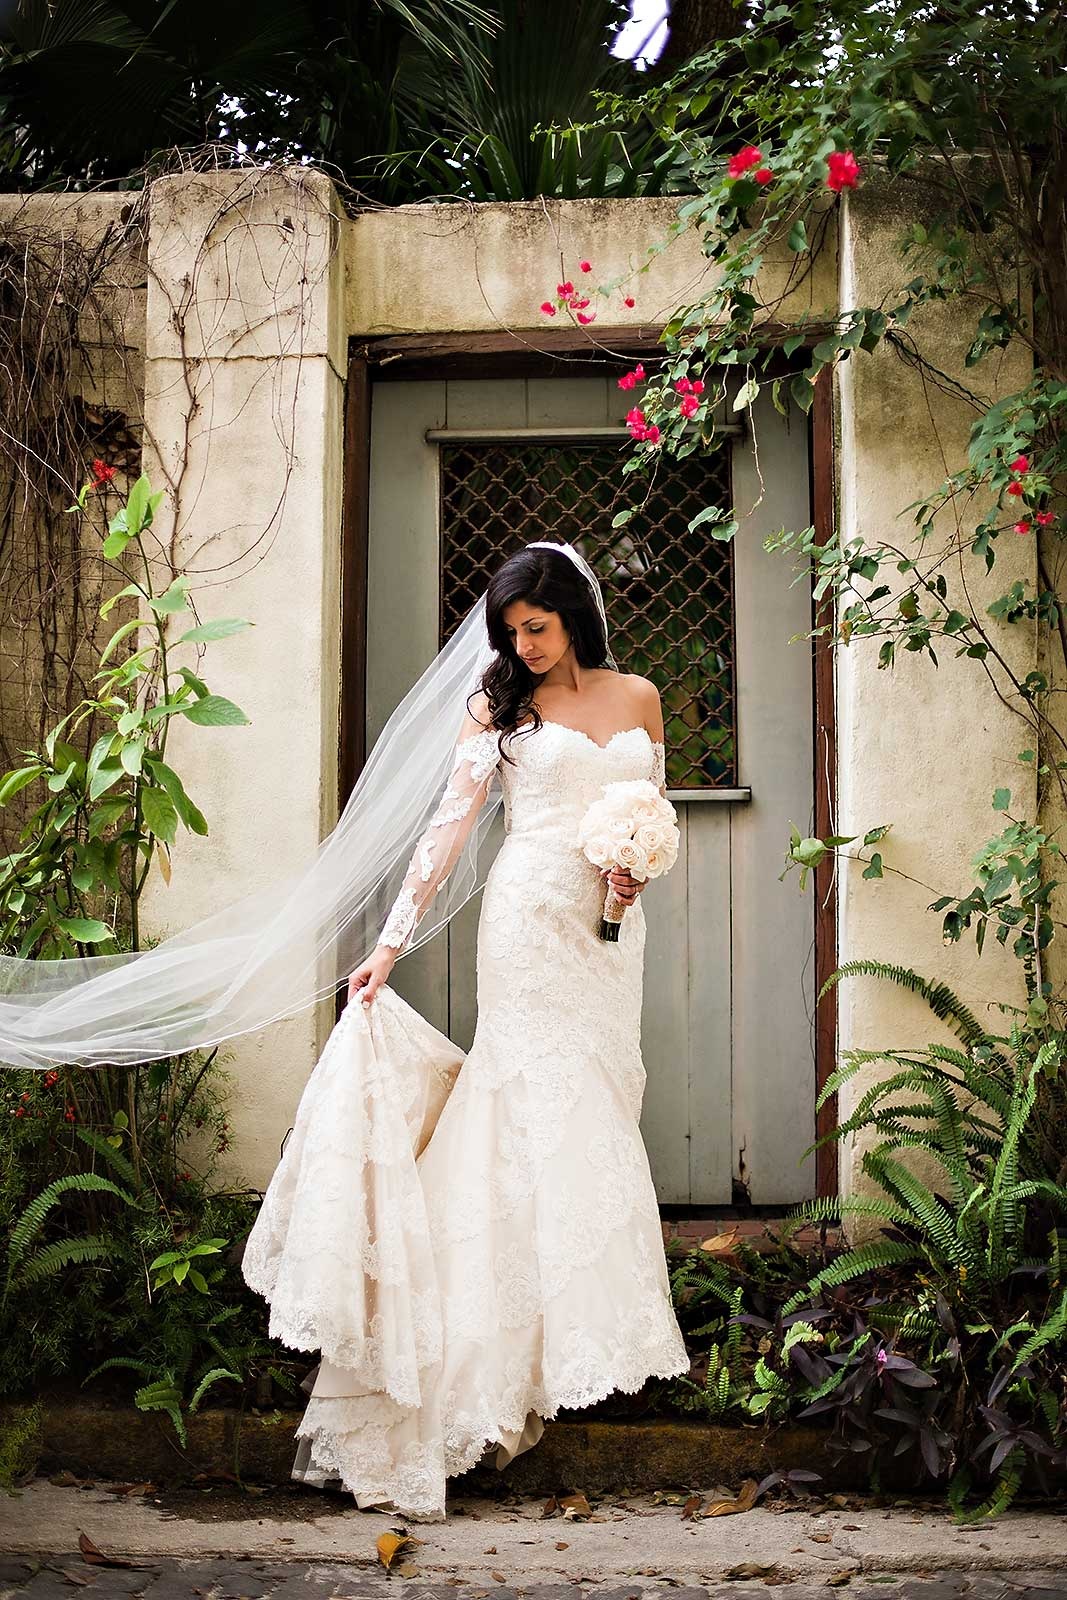 Gorgeous Lace Wedding Dress from a Florida Wedding on a Budget / photo by Rae Leytham Photography / St. Augustine Florida